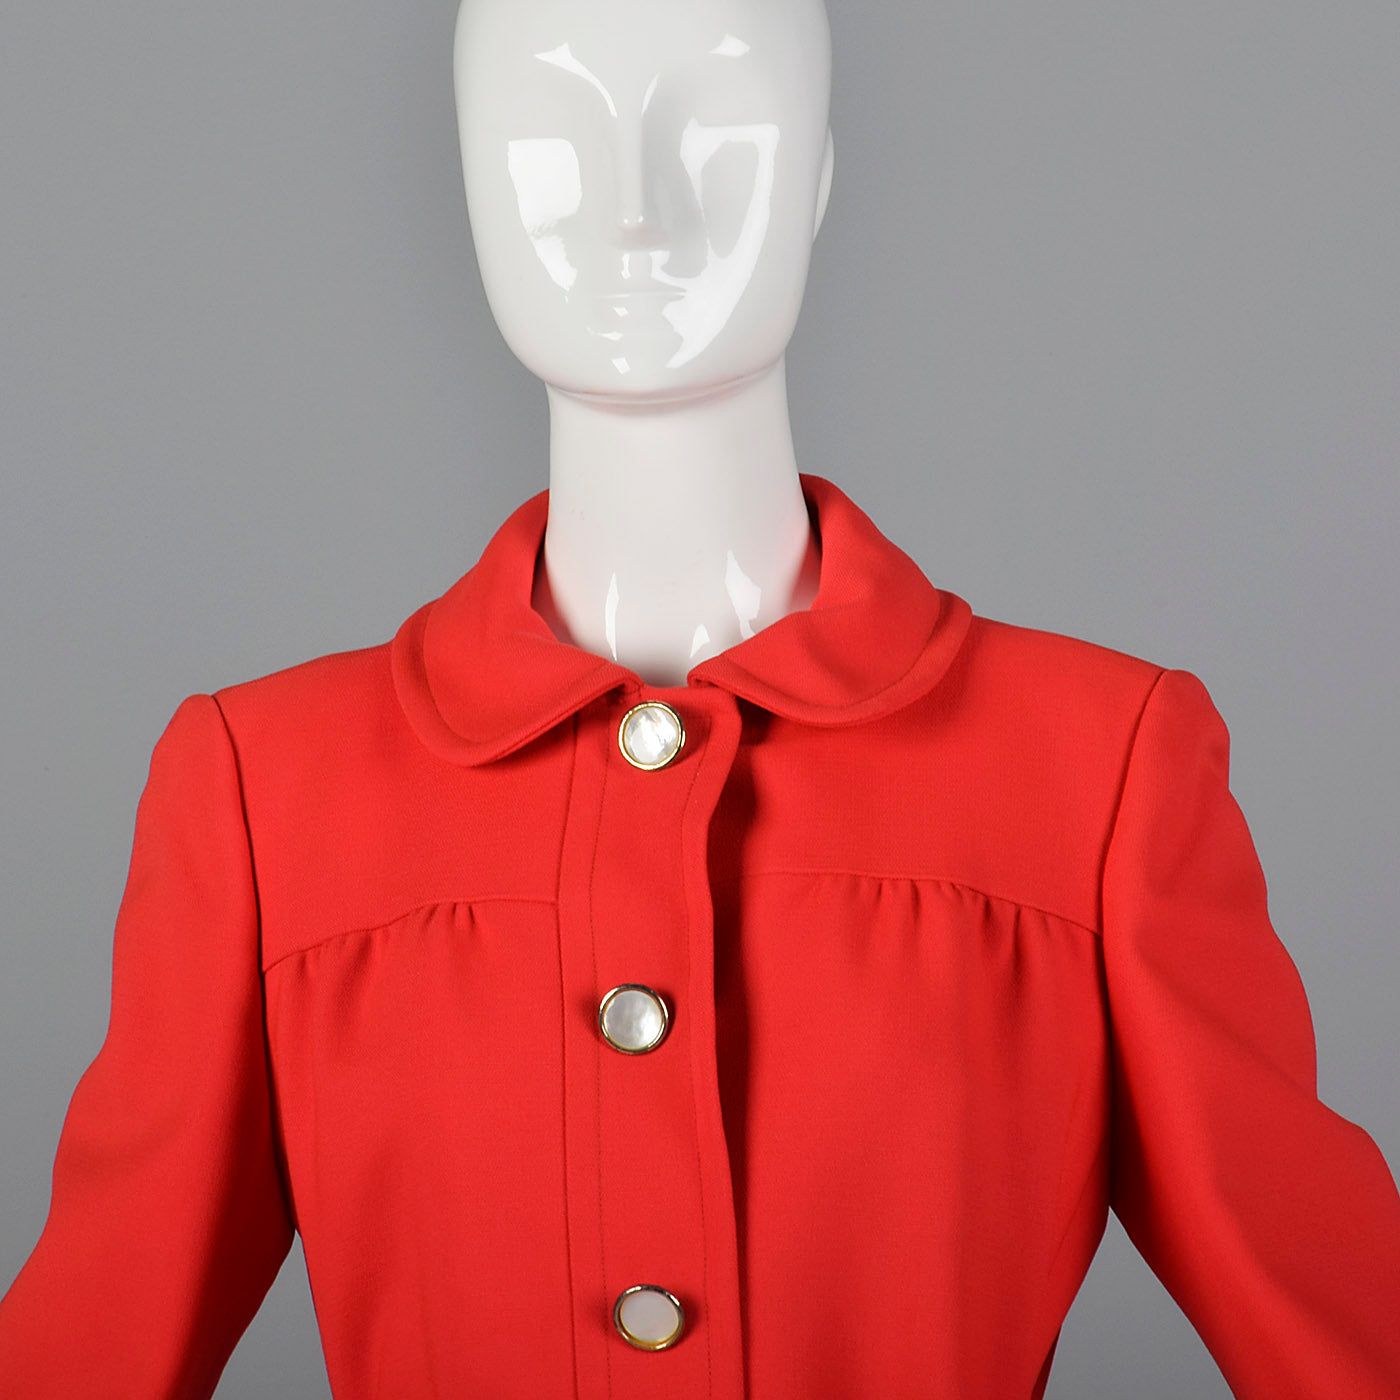 1960s Bright Red Coat Dress